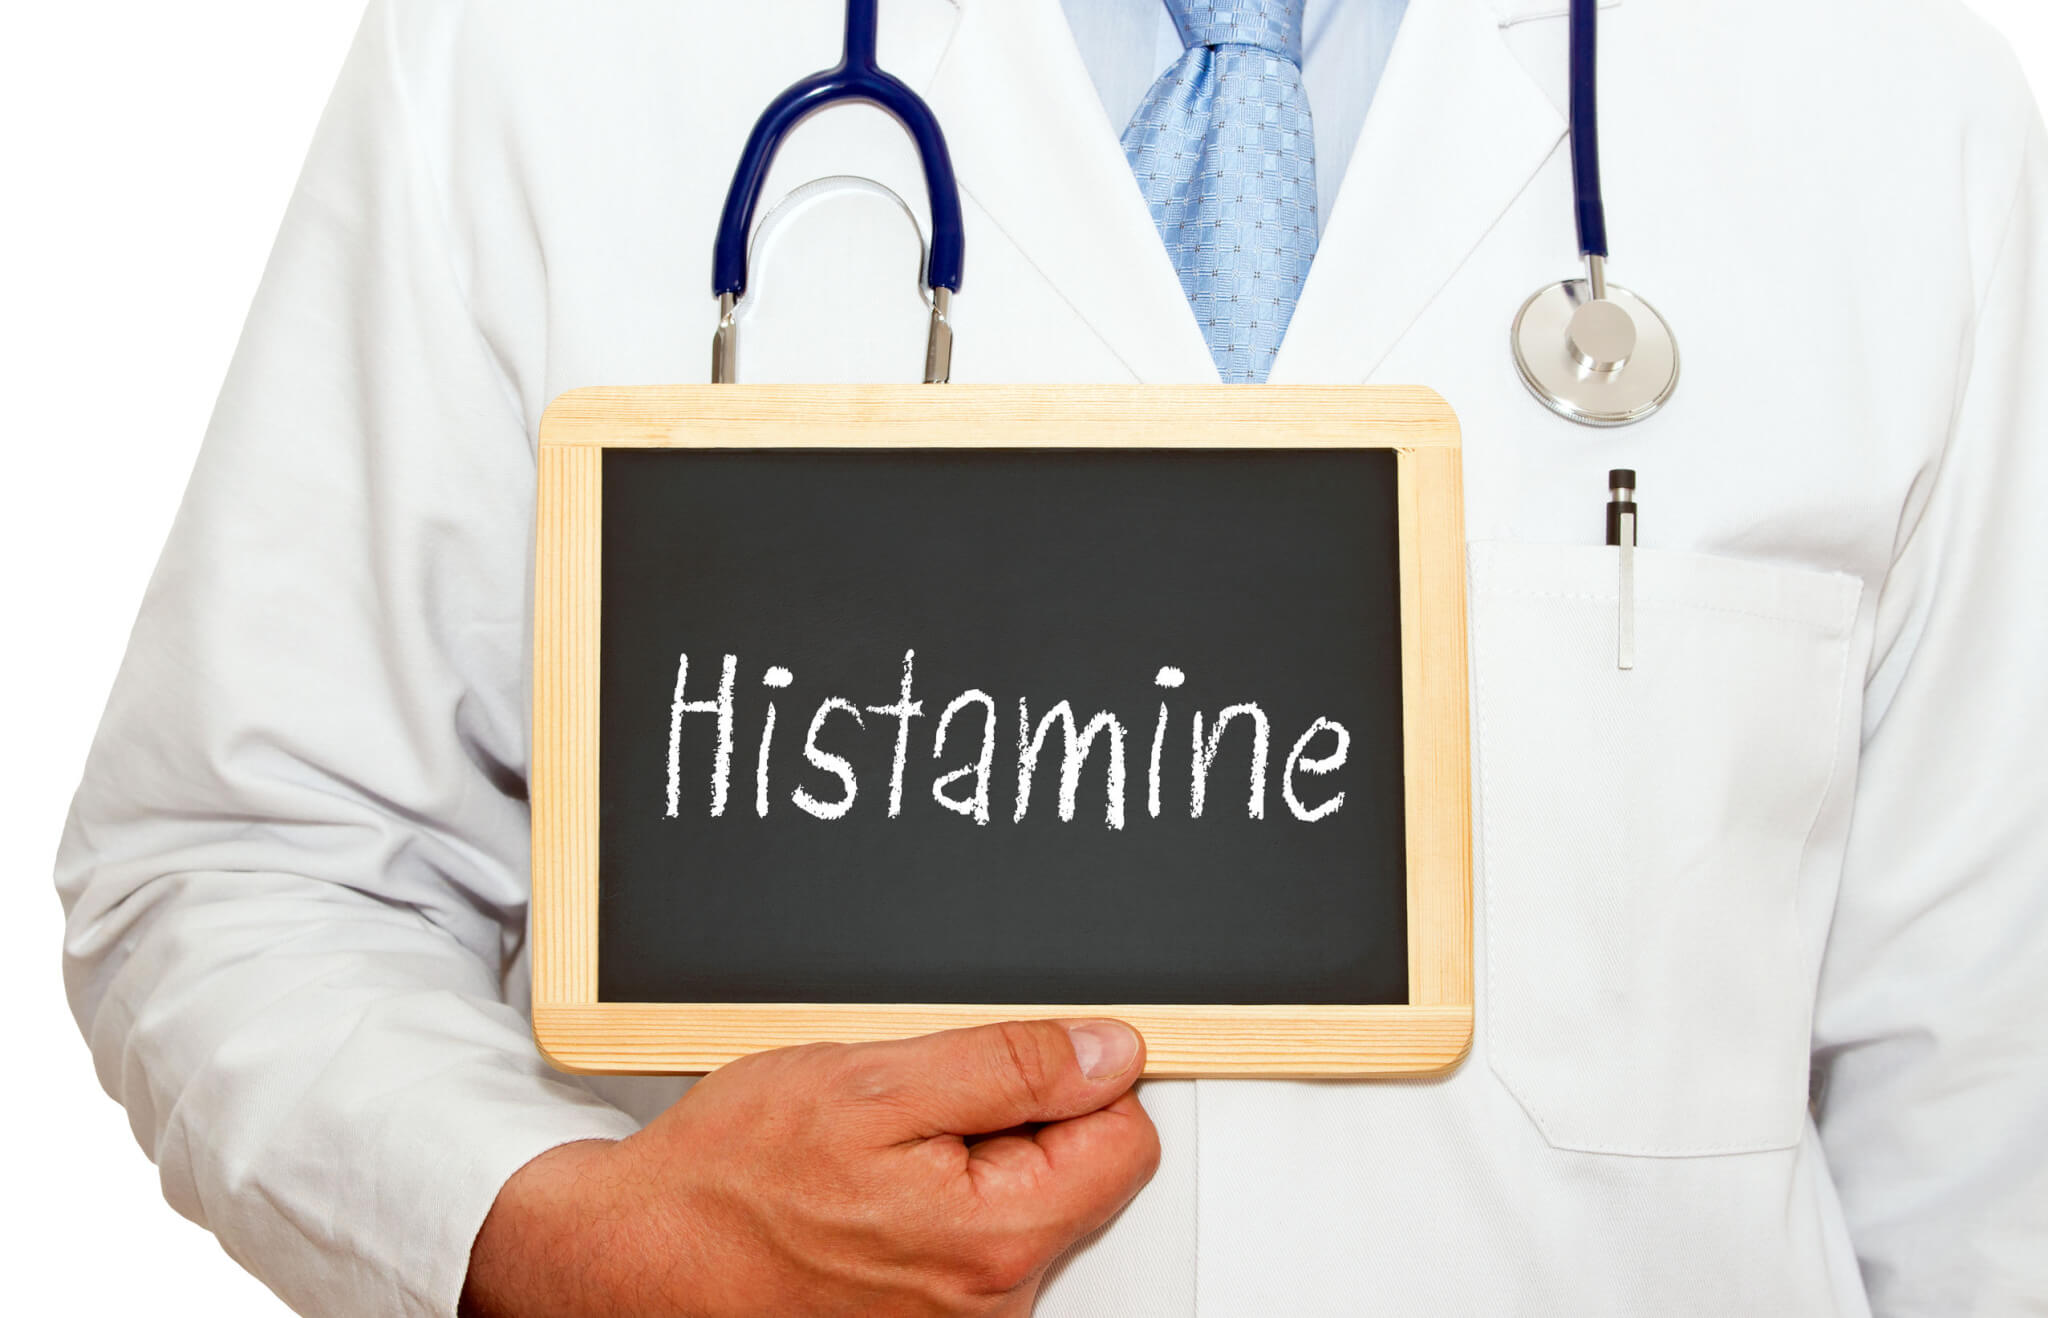 How to Reduce Histamine in the Body